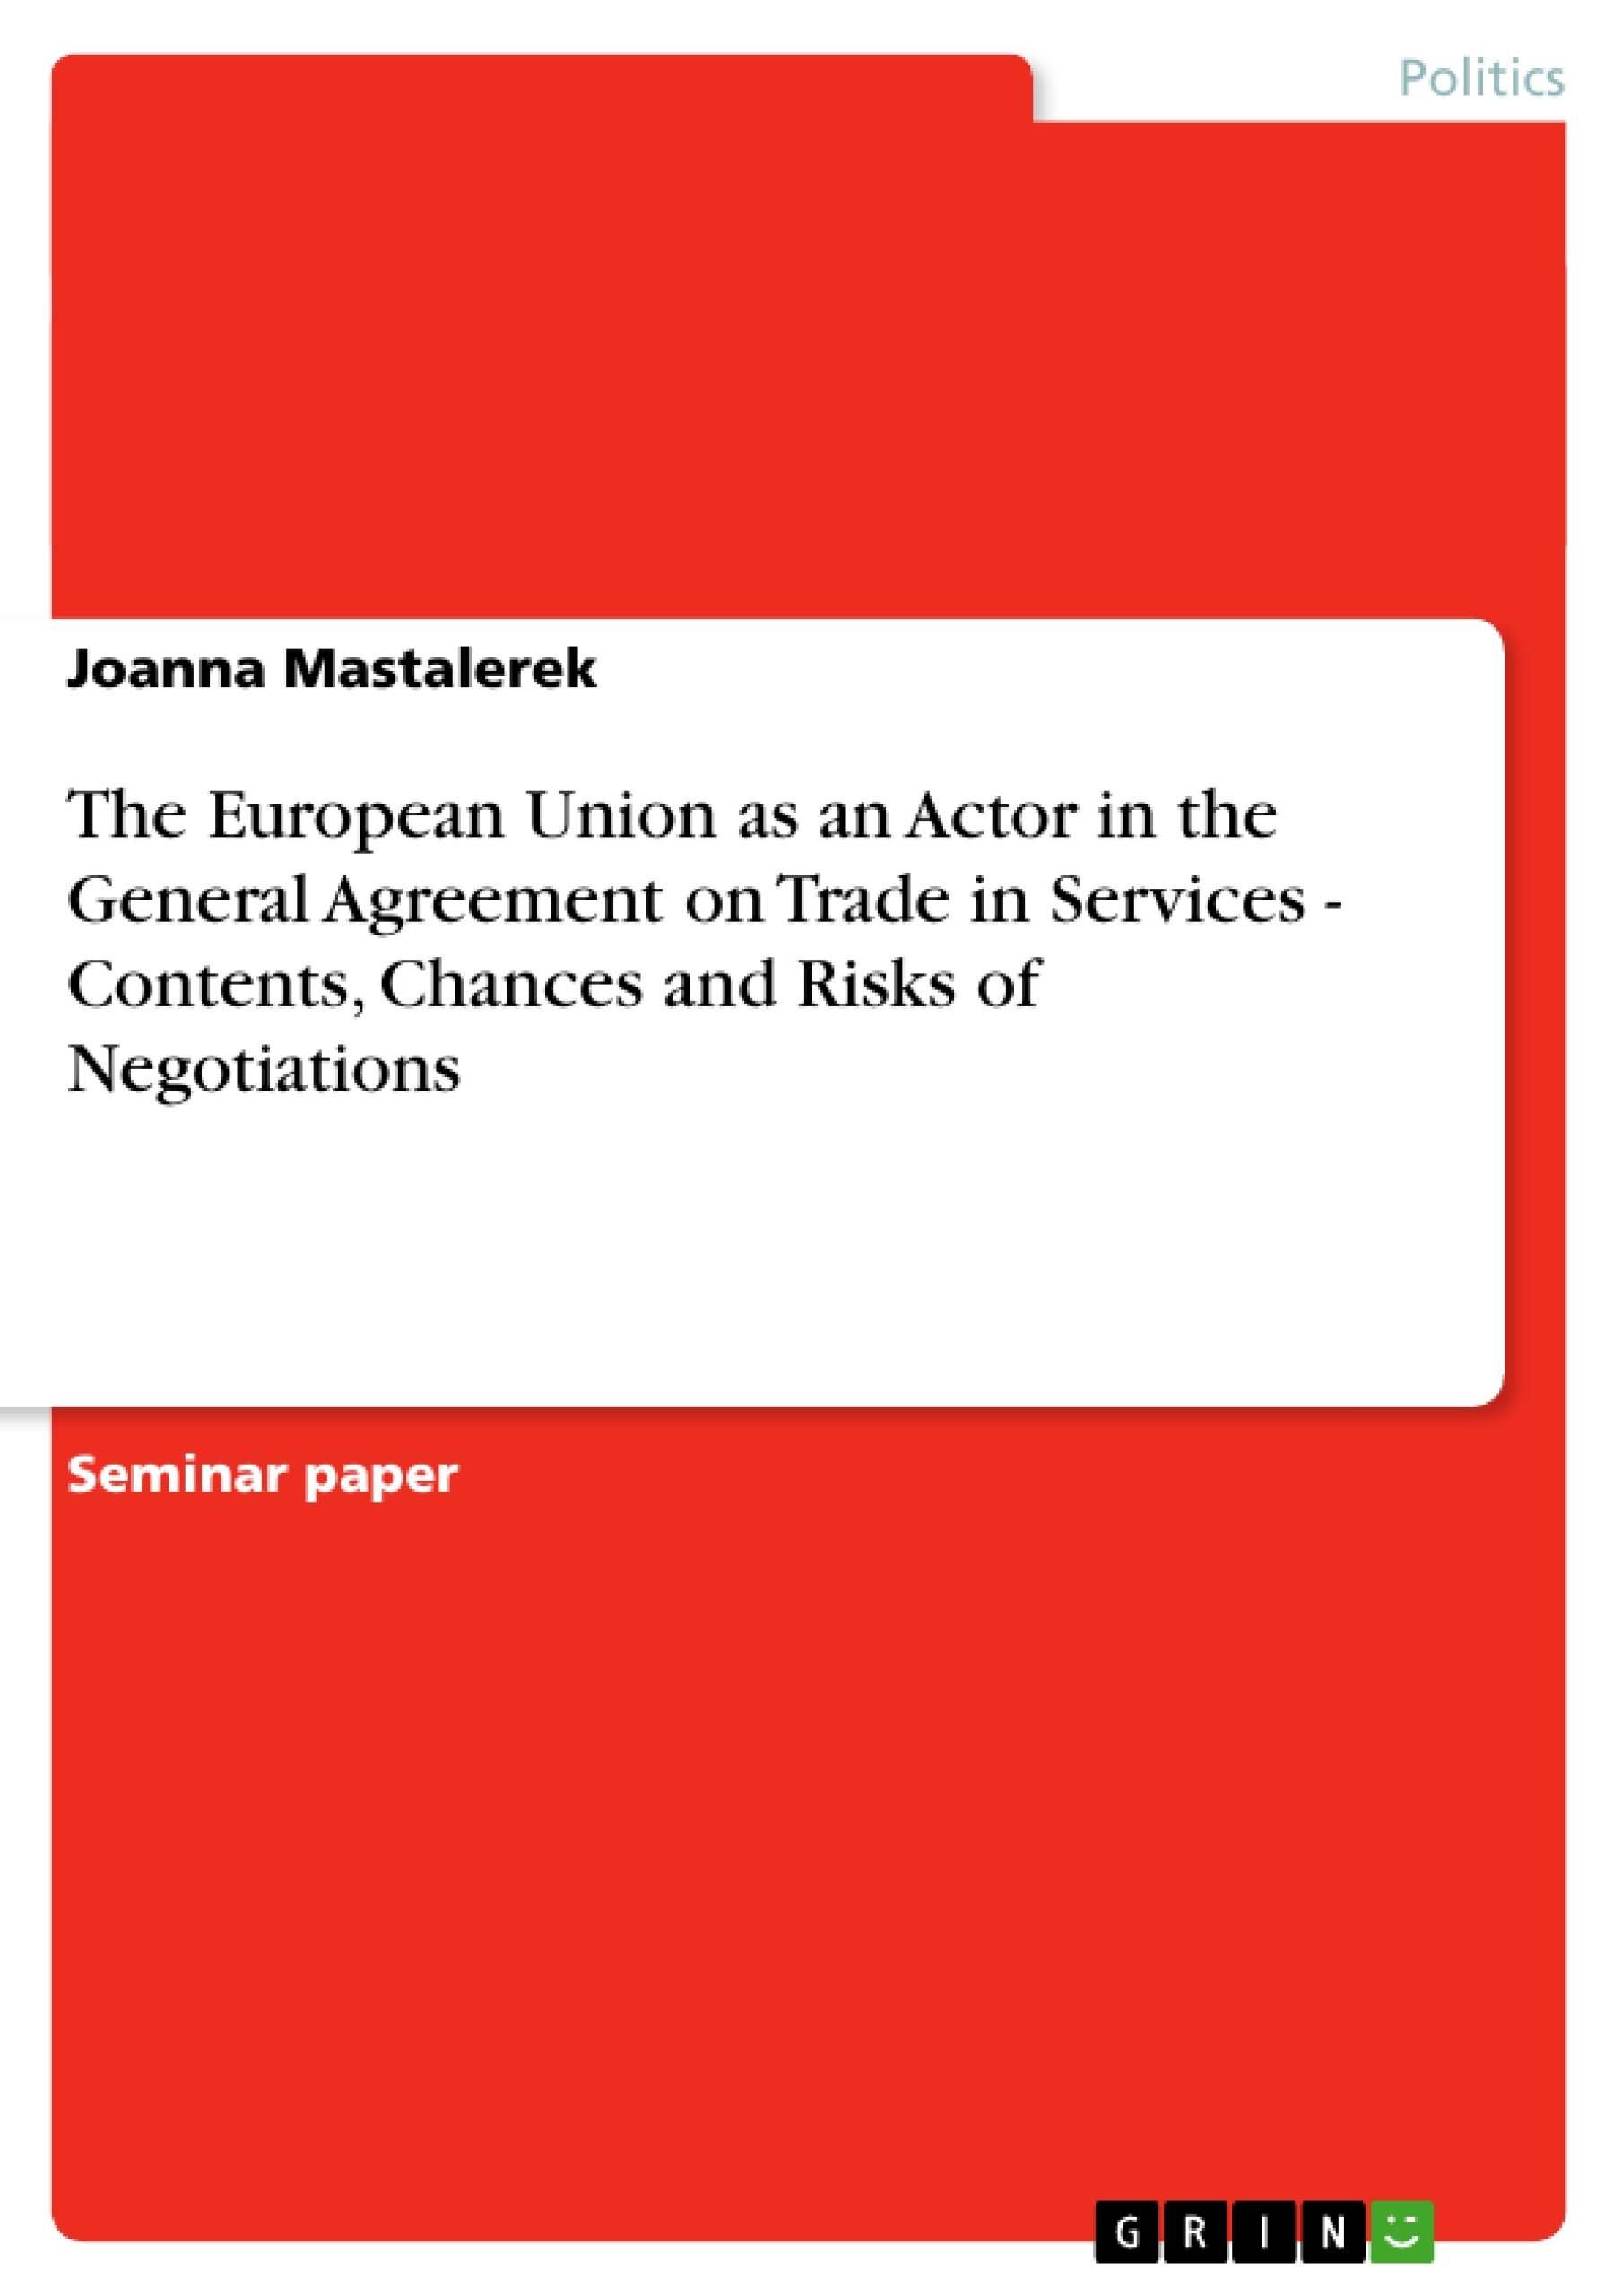 The European Union As An Actor In The General Agreement On Trade